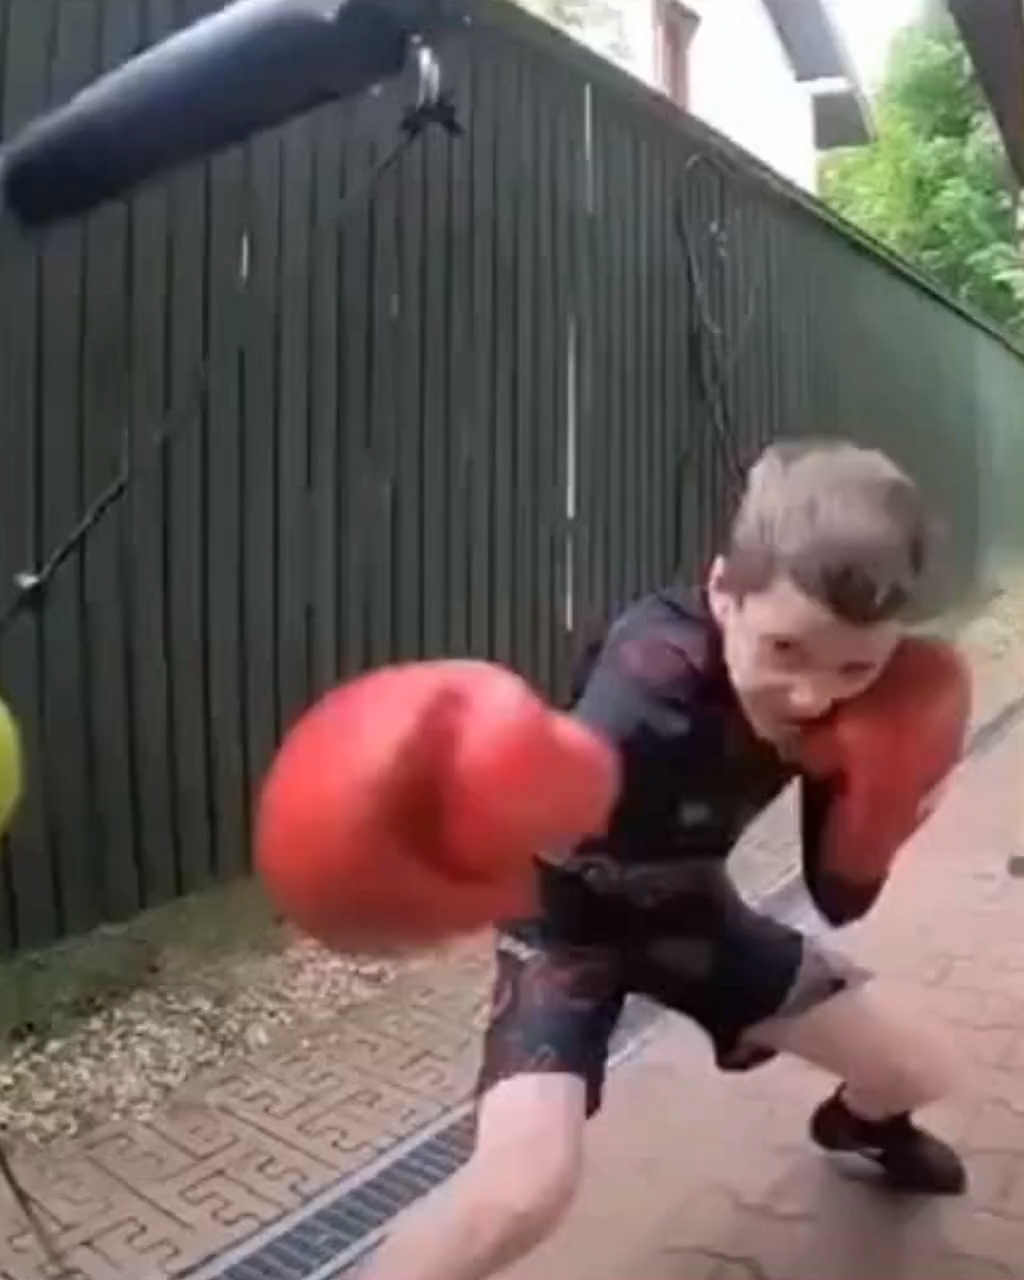 I Will Not Bully Others, and I Will Not Be Bullied! Wall Mounted Response Boxing Training.